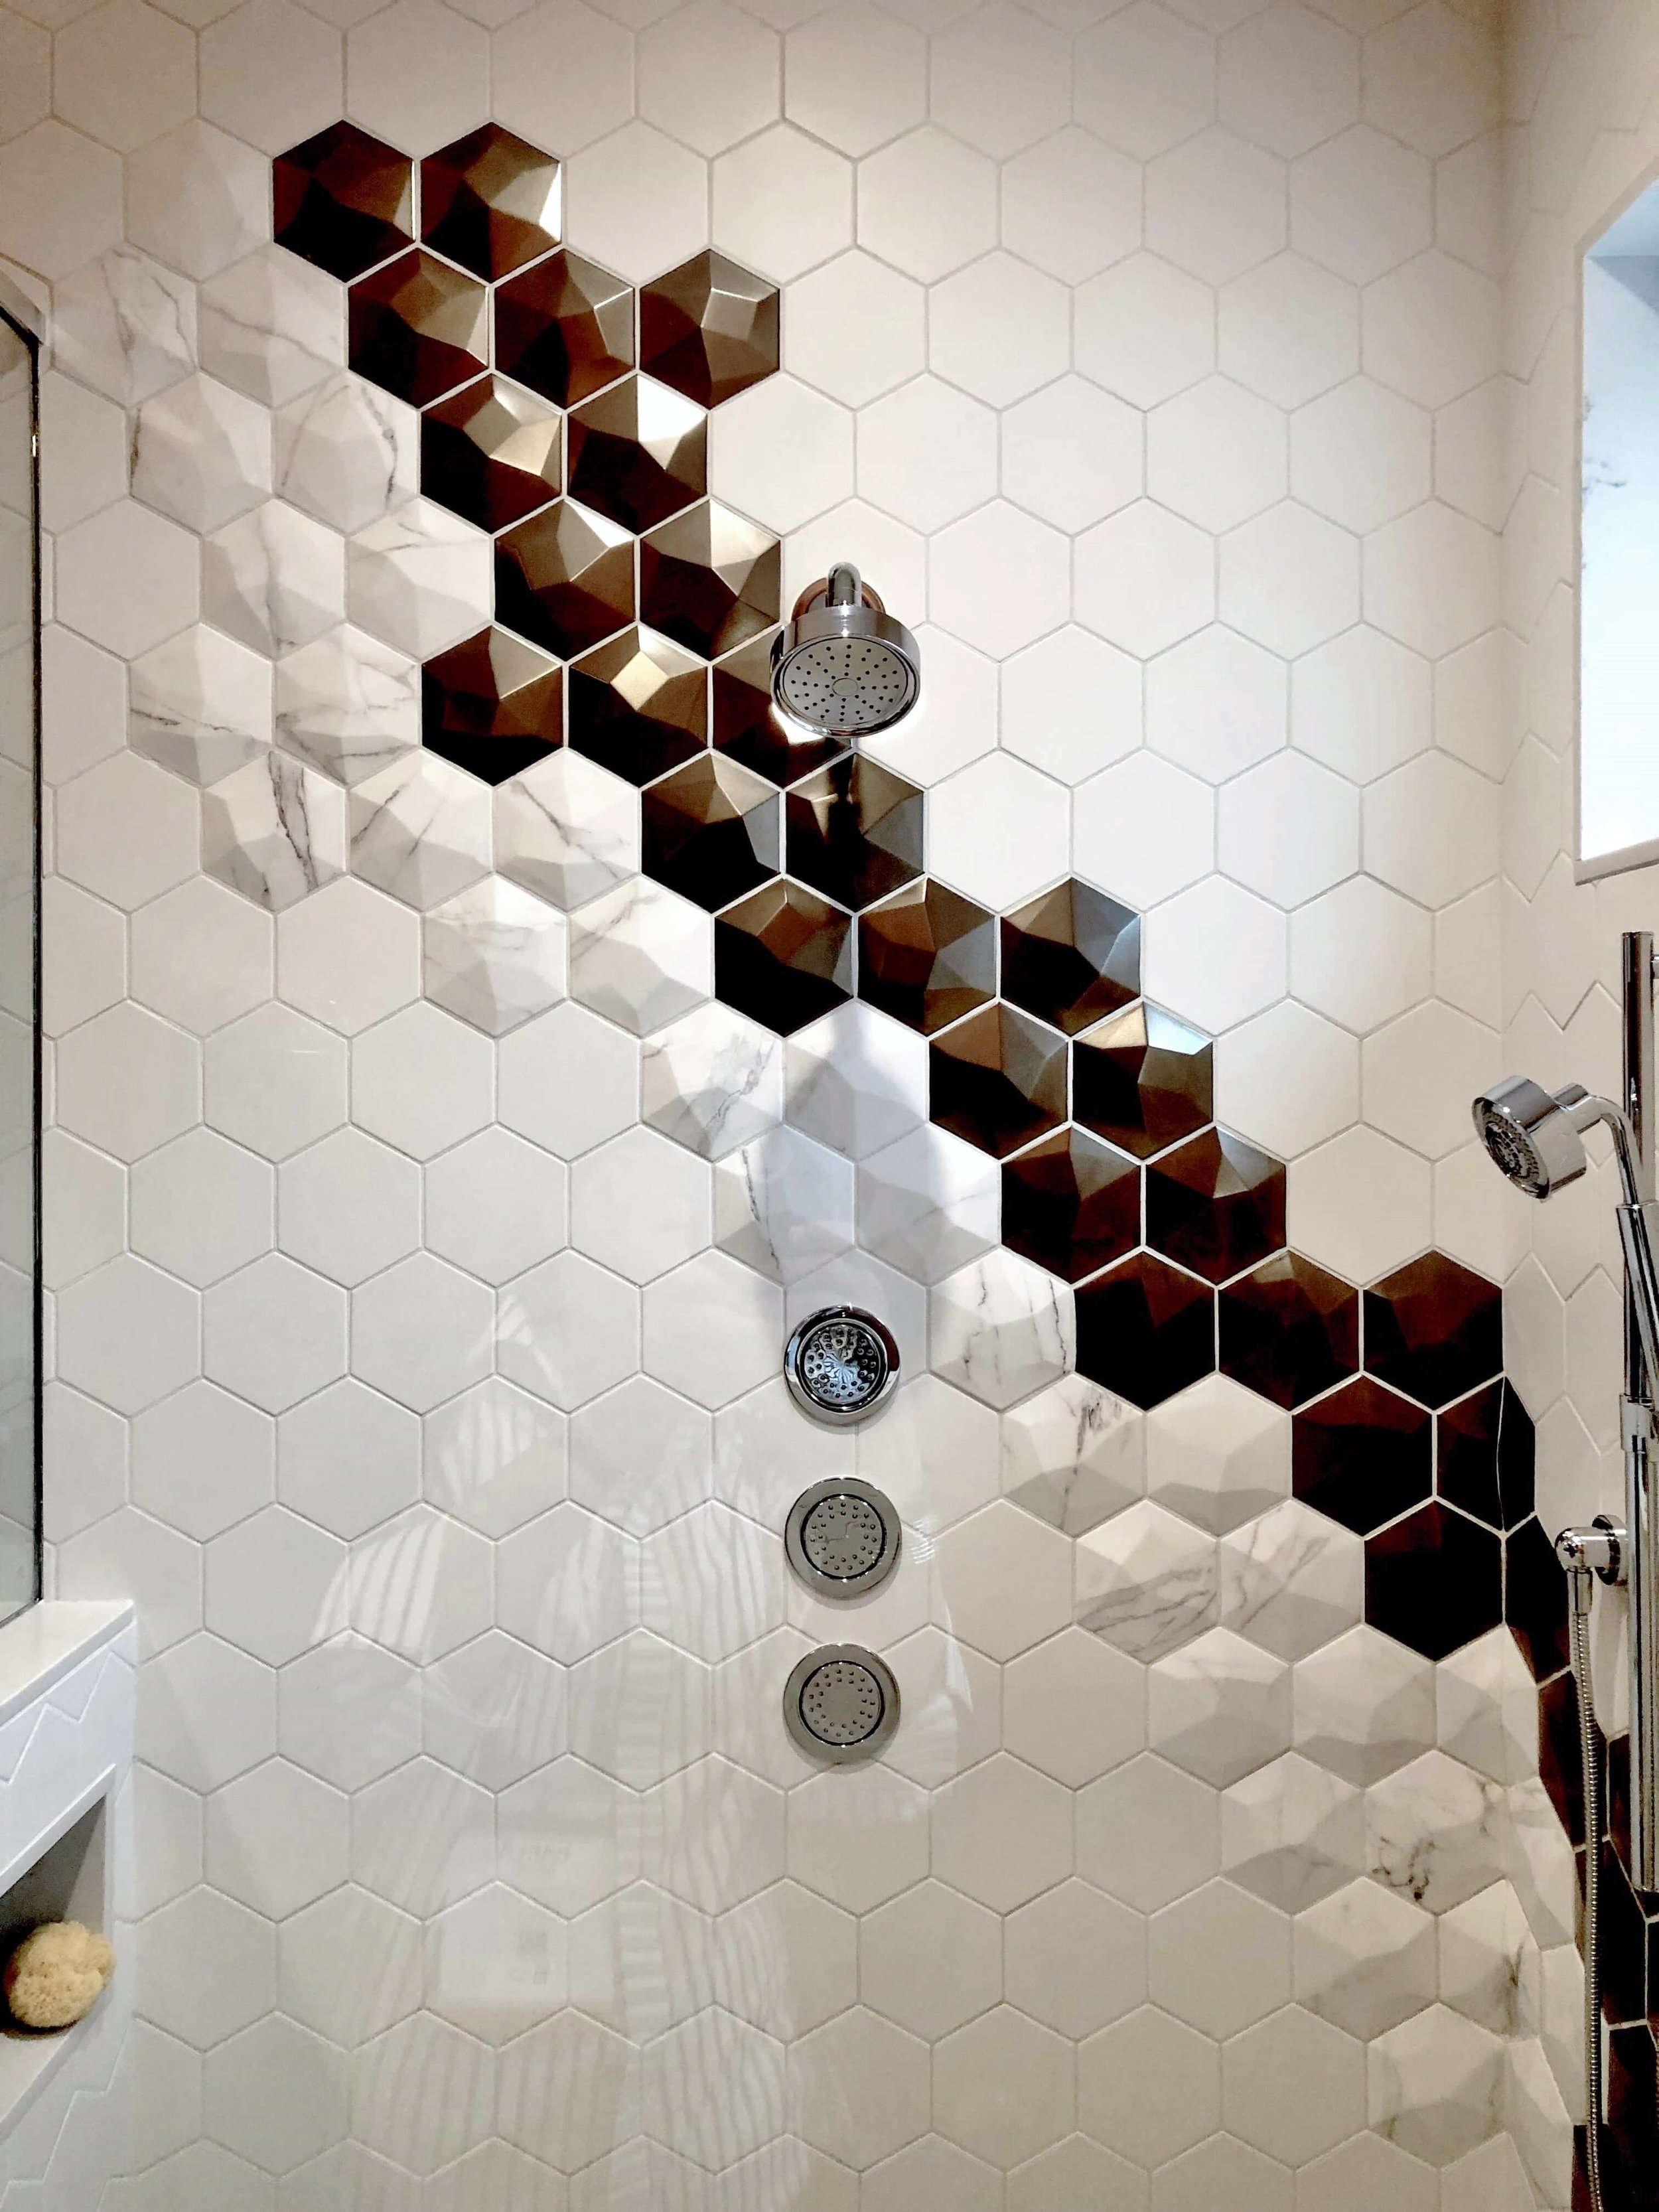 3 Dimensional hex tiles, KBIS 2019 Surfaces Trends | The New American Remodel shower stall